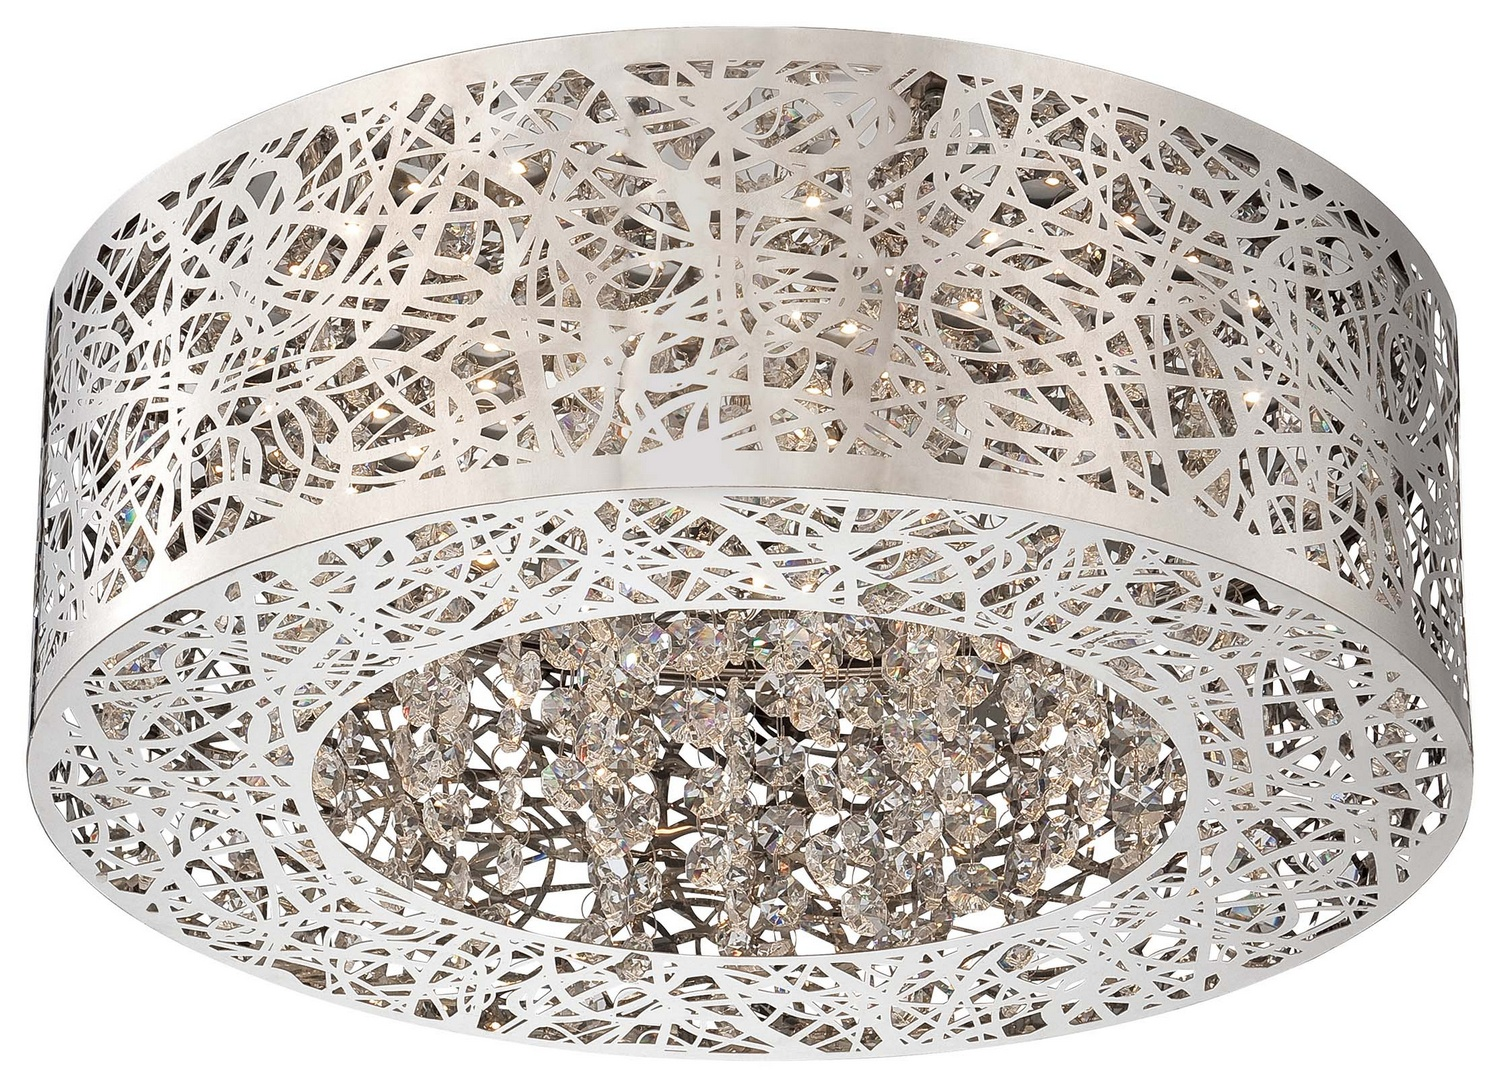 Kovacs P980 Hidden Gems Flush Mount in Chrome with Crystal and 3000K LED lamping